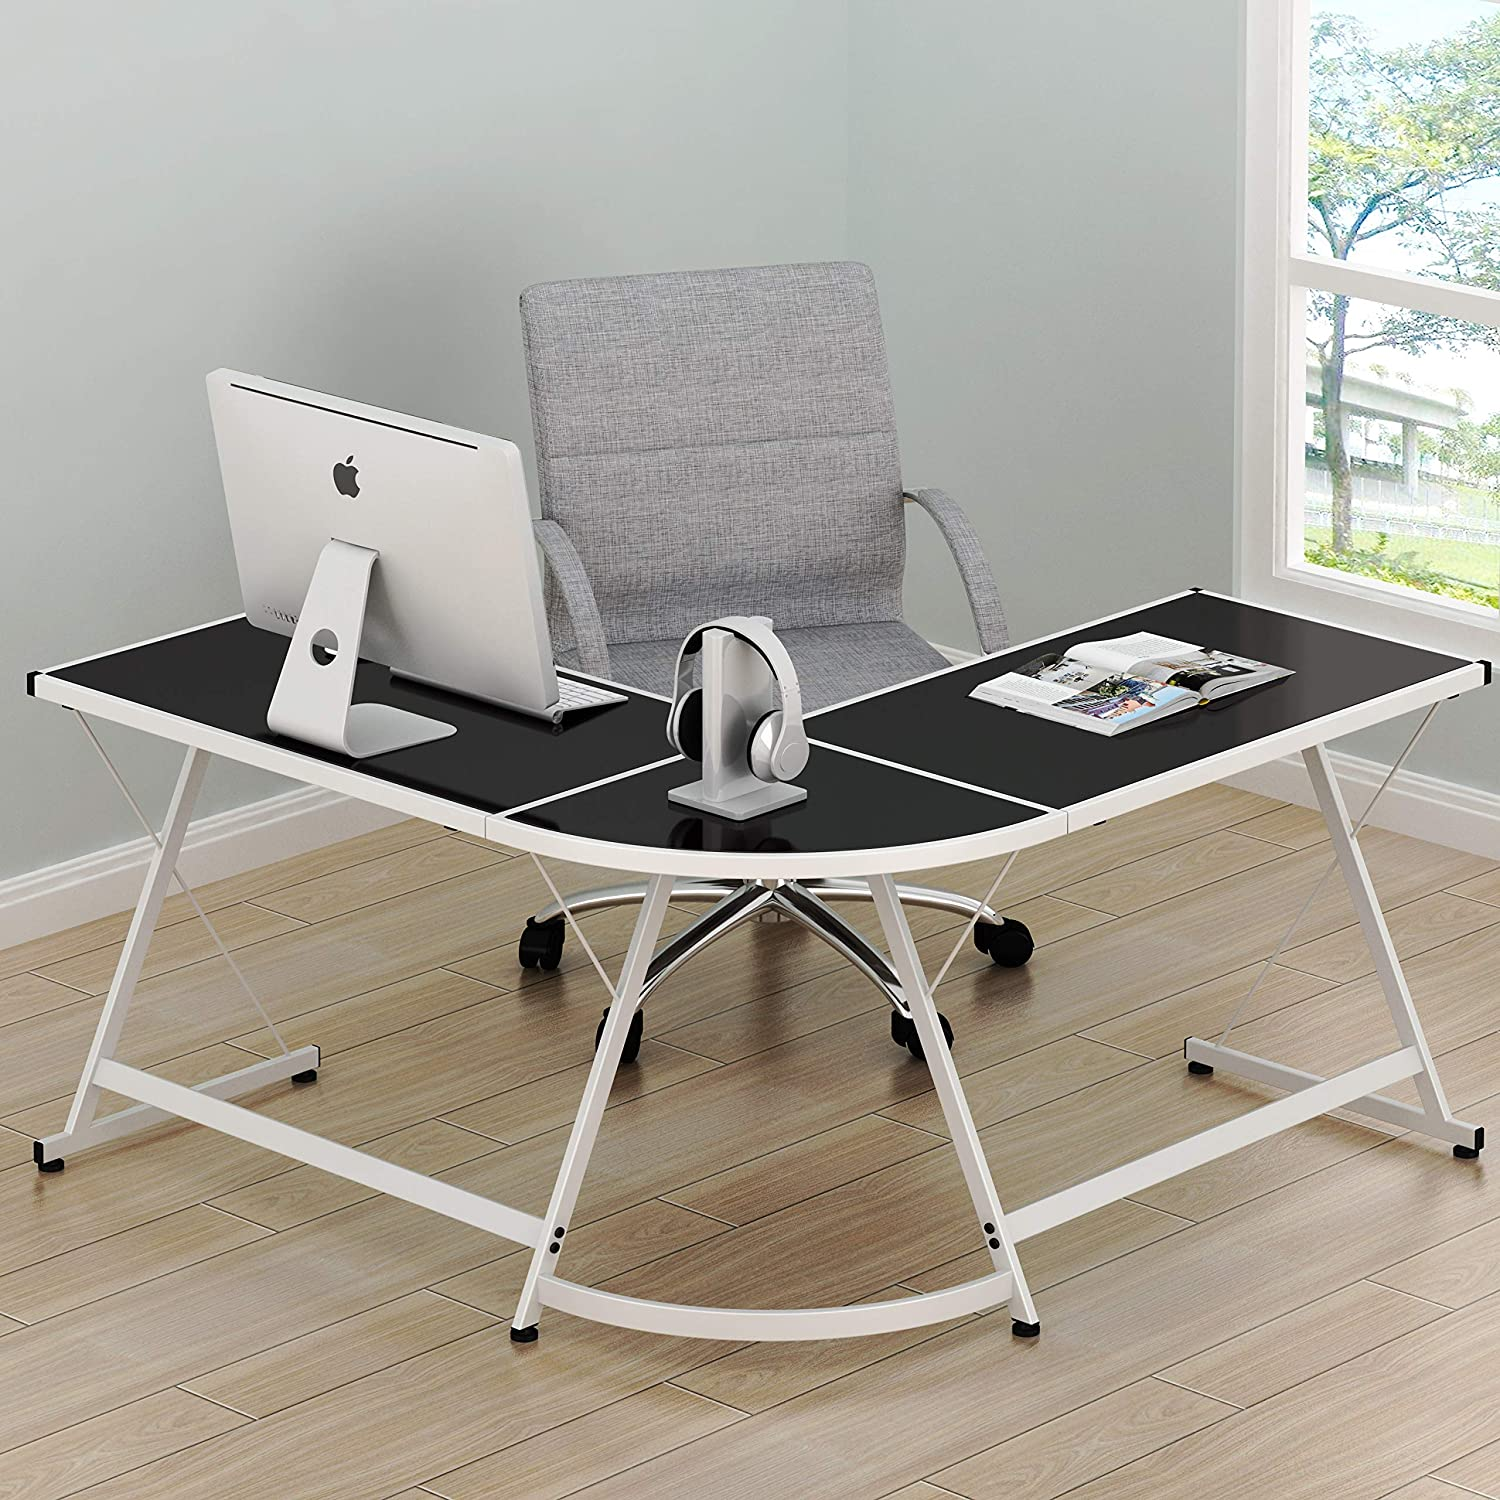 SHW Vista Corner L Desk – White with Black Glass